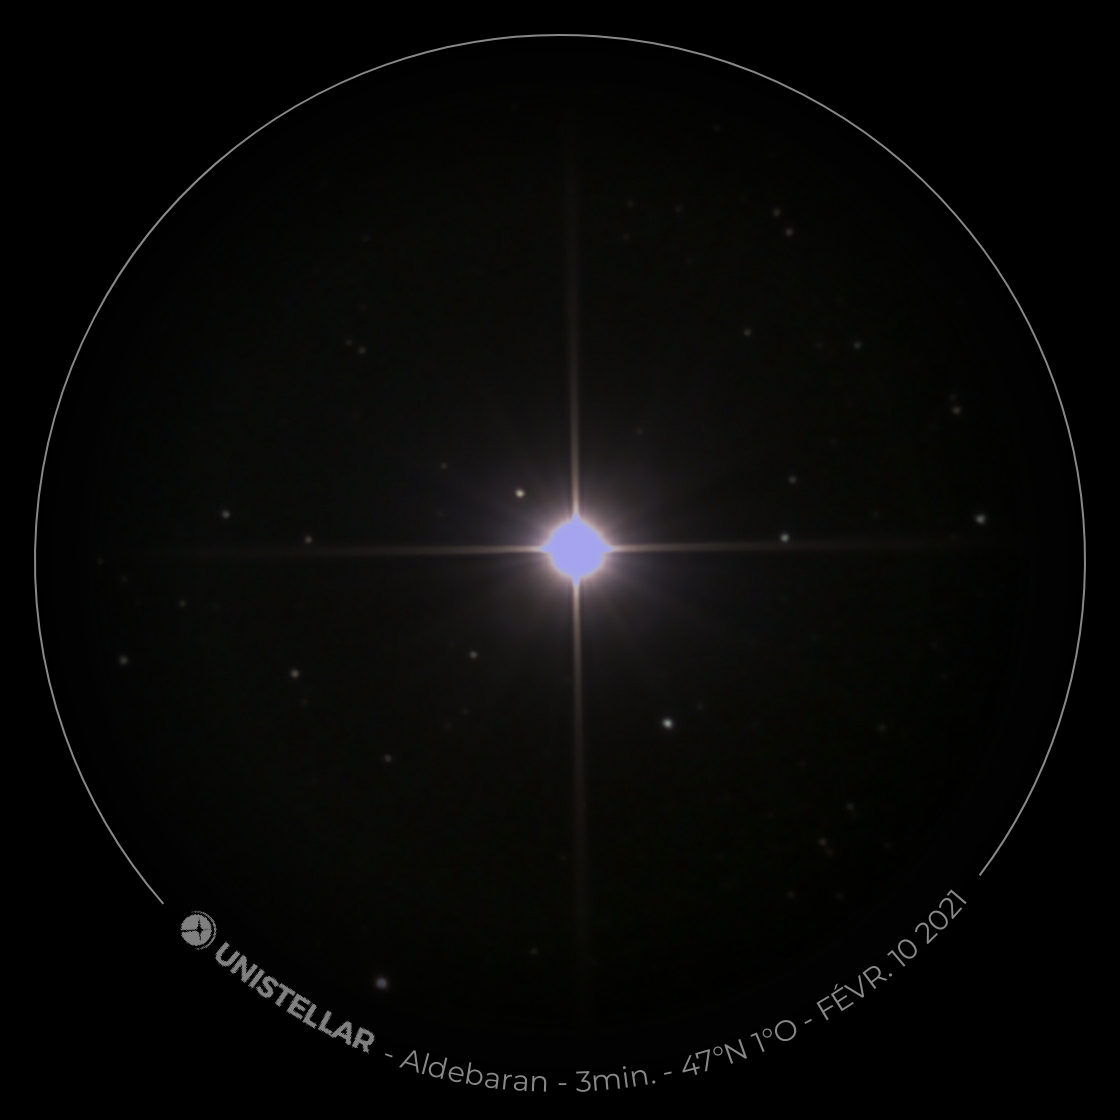 eVscope-20210210-183111.png